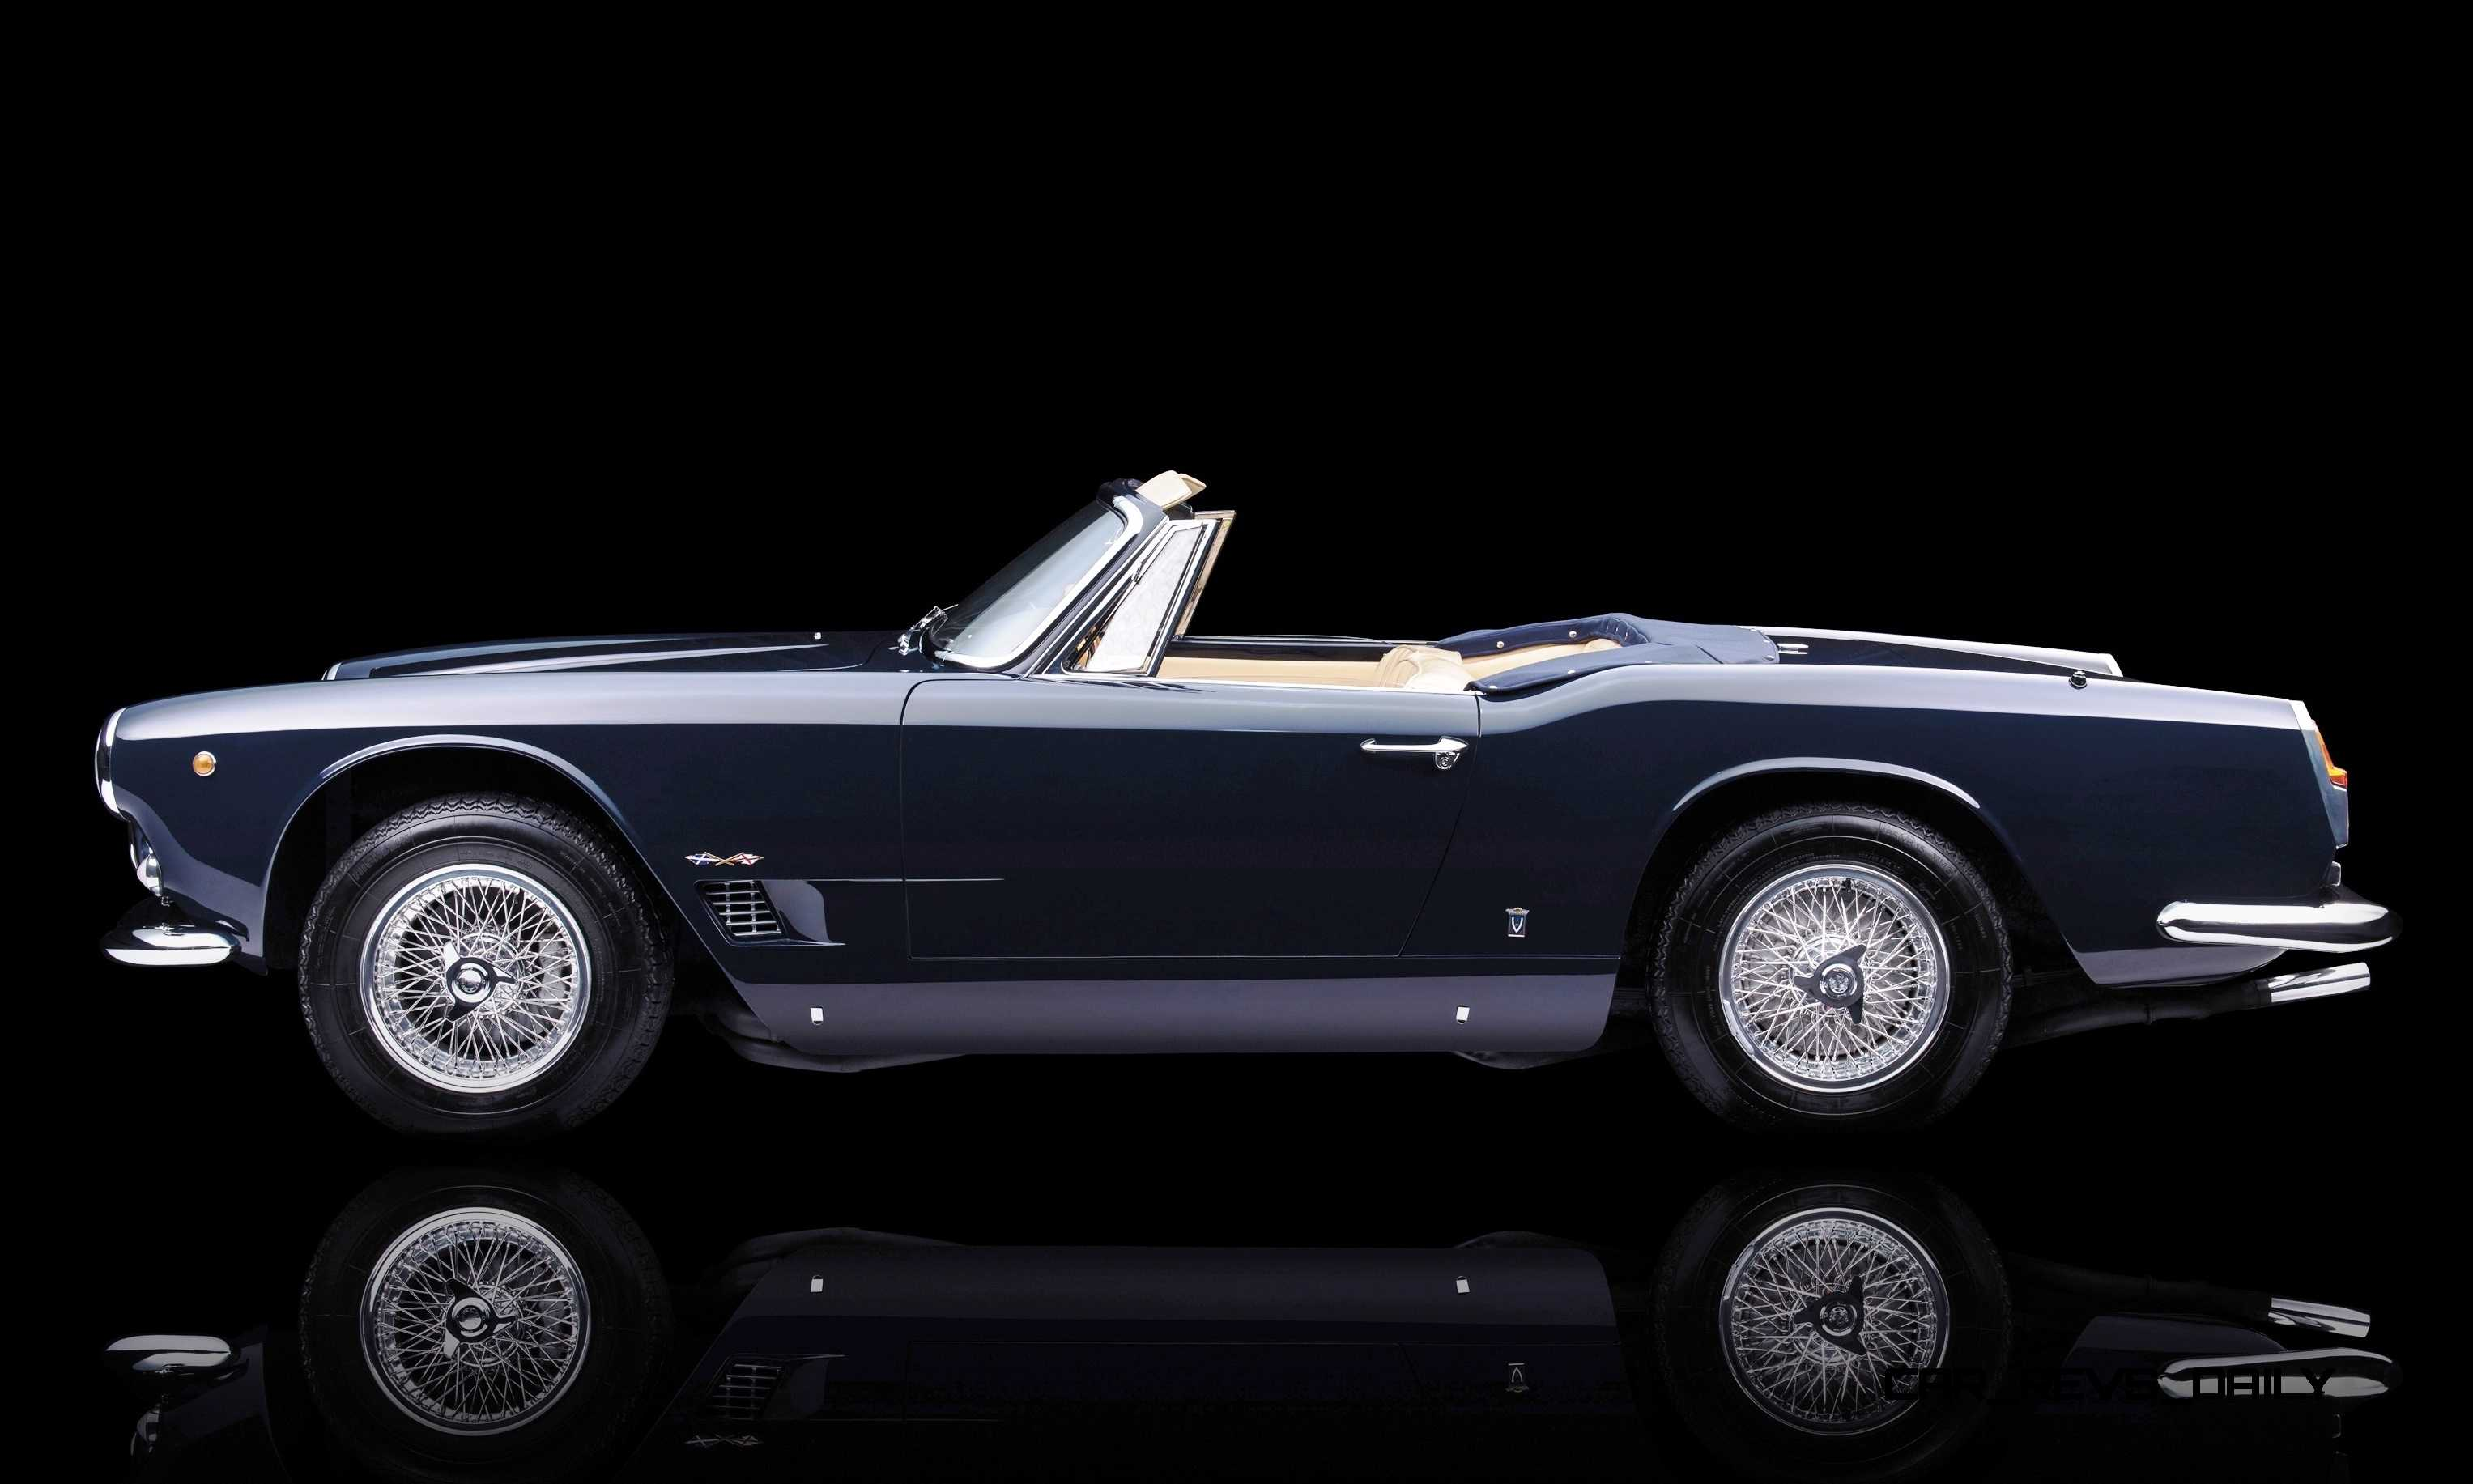 aston martin db9 volante with 1961 Maserati 3500gt on Aston Martin Db9 Volante 2004 2008 Photos 146533 1024x768 in addition Astonmartin Hongkong together with Wallpaper 06 also 15057956 also Aston Martin Db9 Volante Review Pictures.